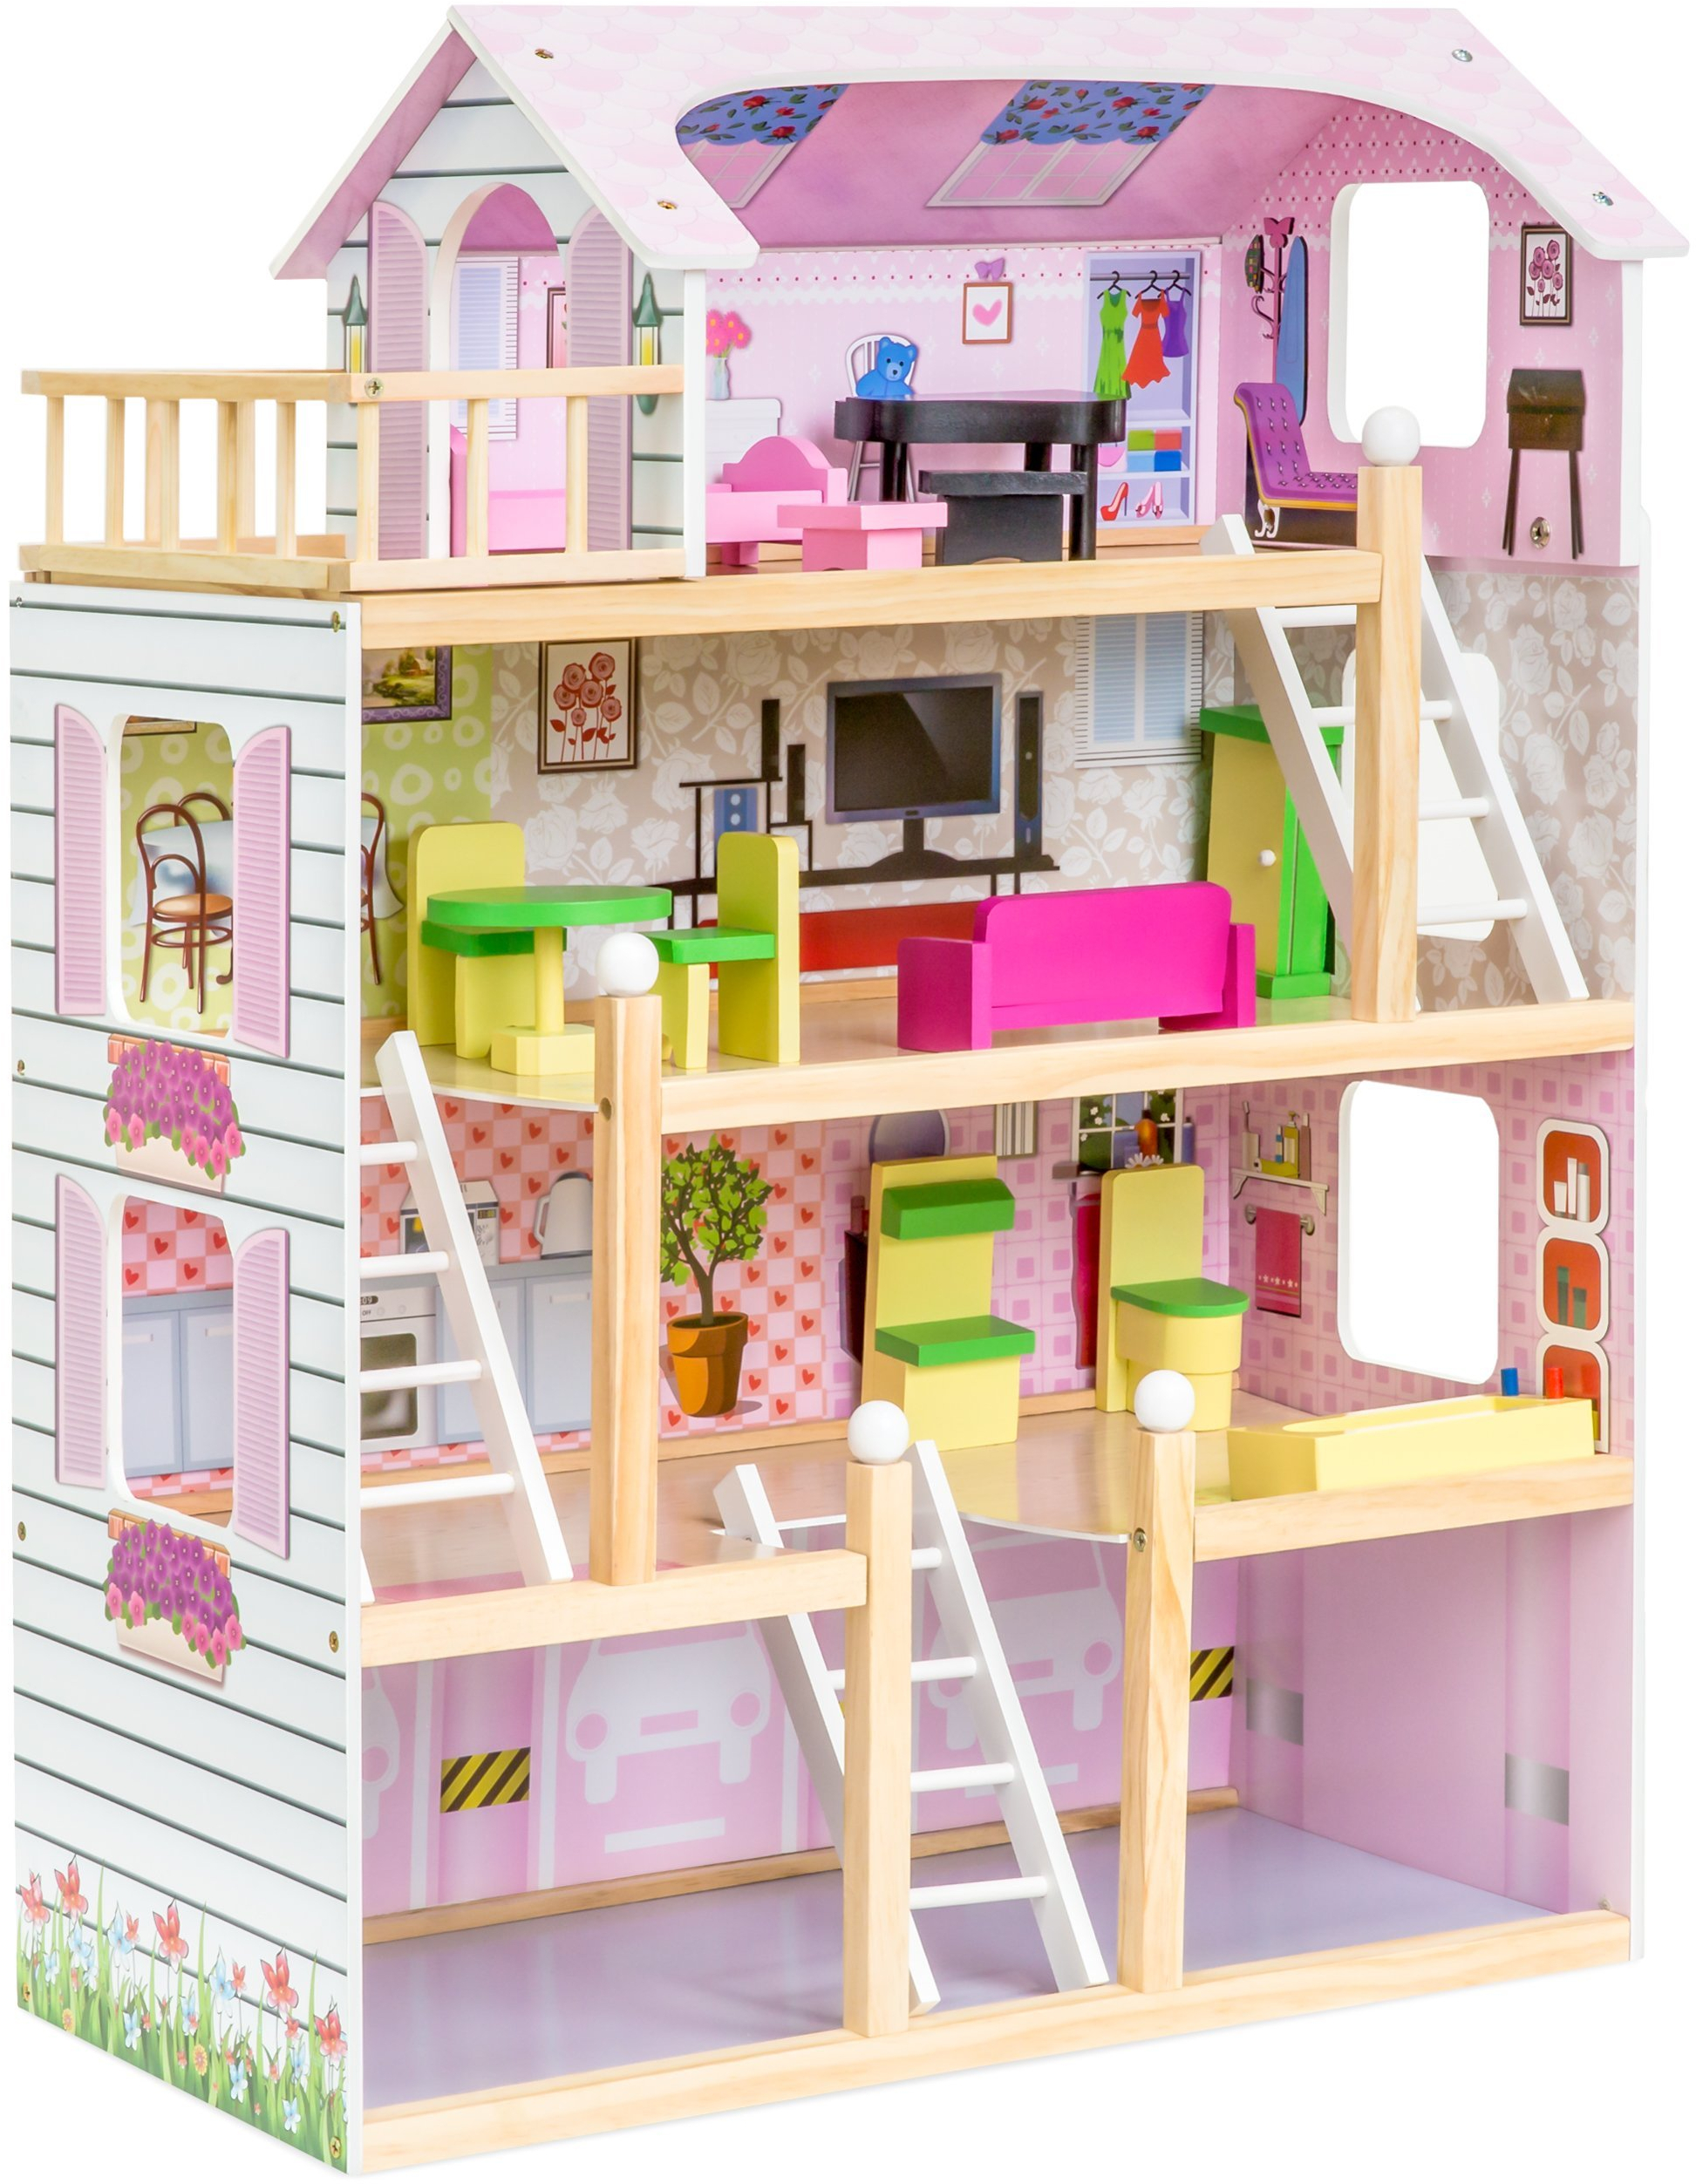 4 Level Kids Wooden Dollhouse W 13 Pieces Of Furniture Pink